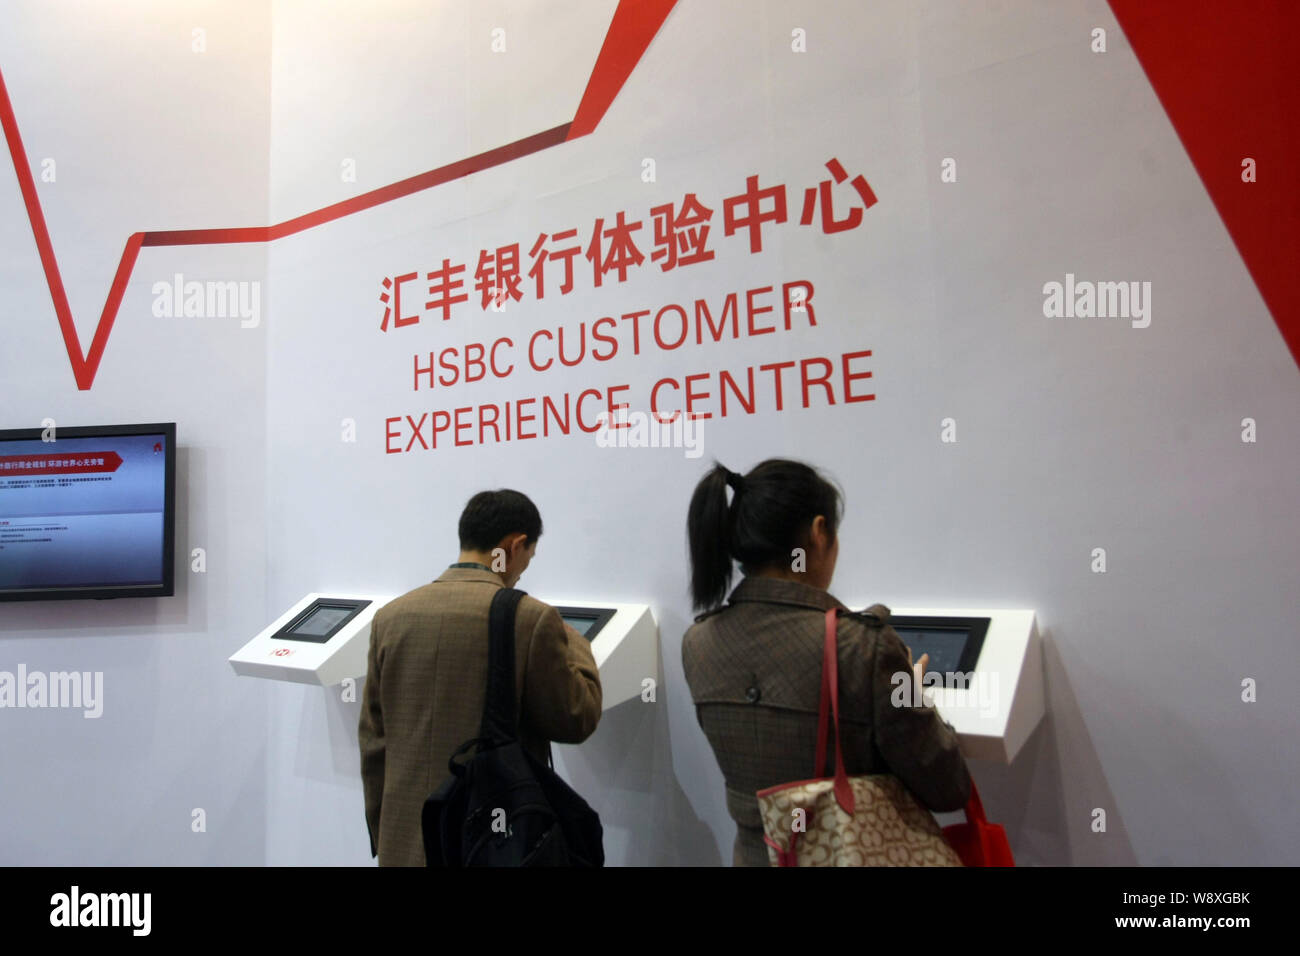 FILE--Visitors are seen at the stand of HSBC (the Hongkong